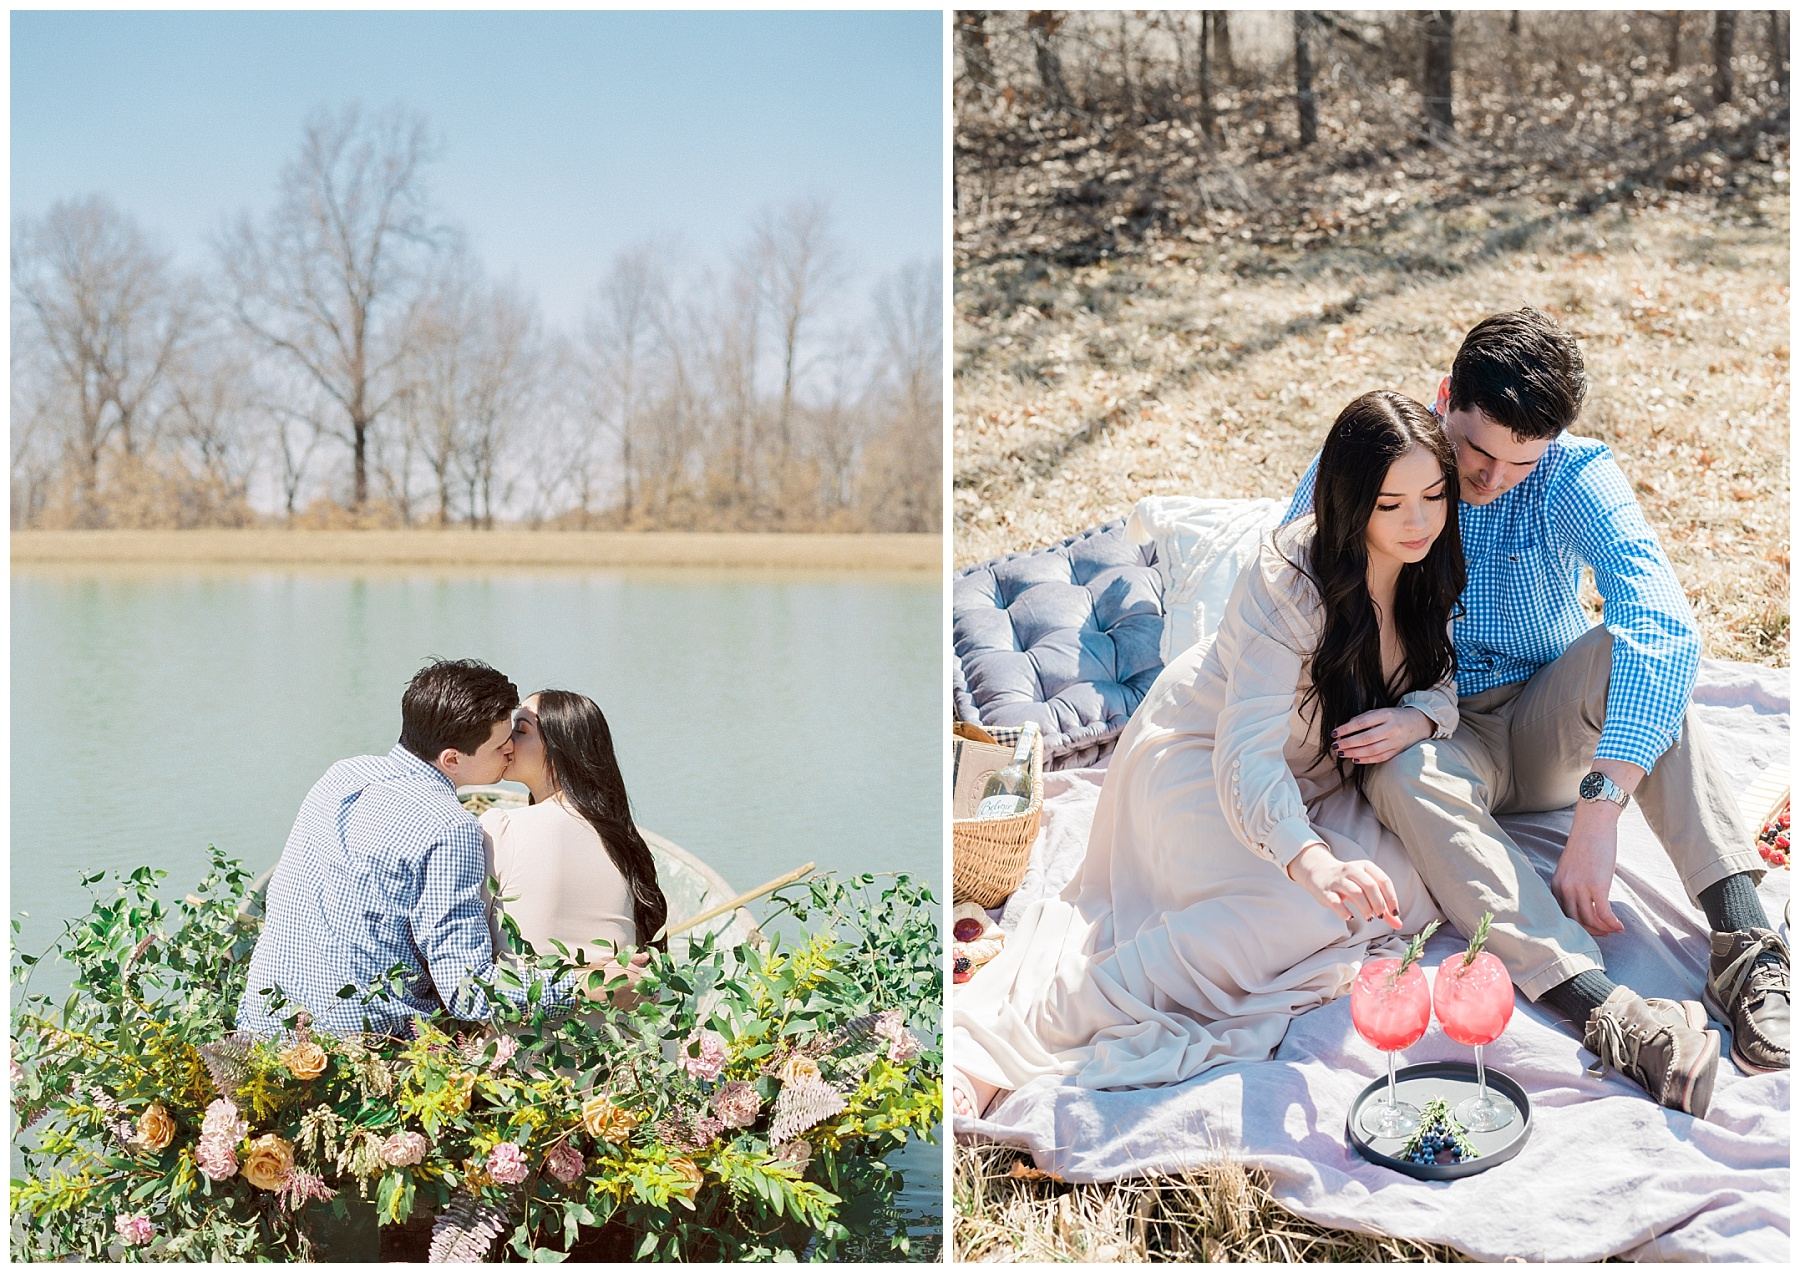 Late Fall Farm-to-table Inspired Brunch Picnic Engagement Session During Wedding Weekend by Kelsi Kliethermes Photography Best Missouri and Maui Wedding Photographer_0017.jpg